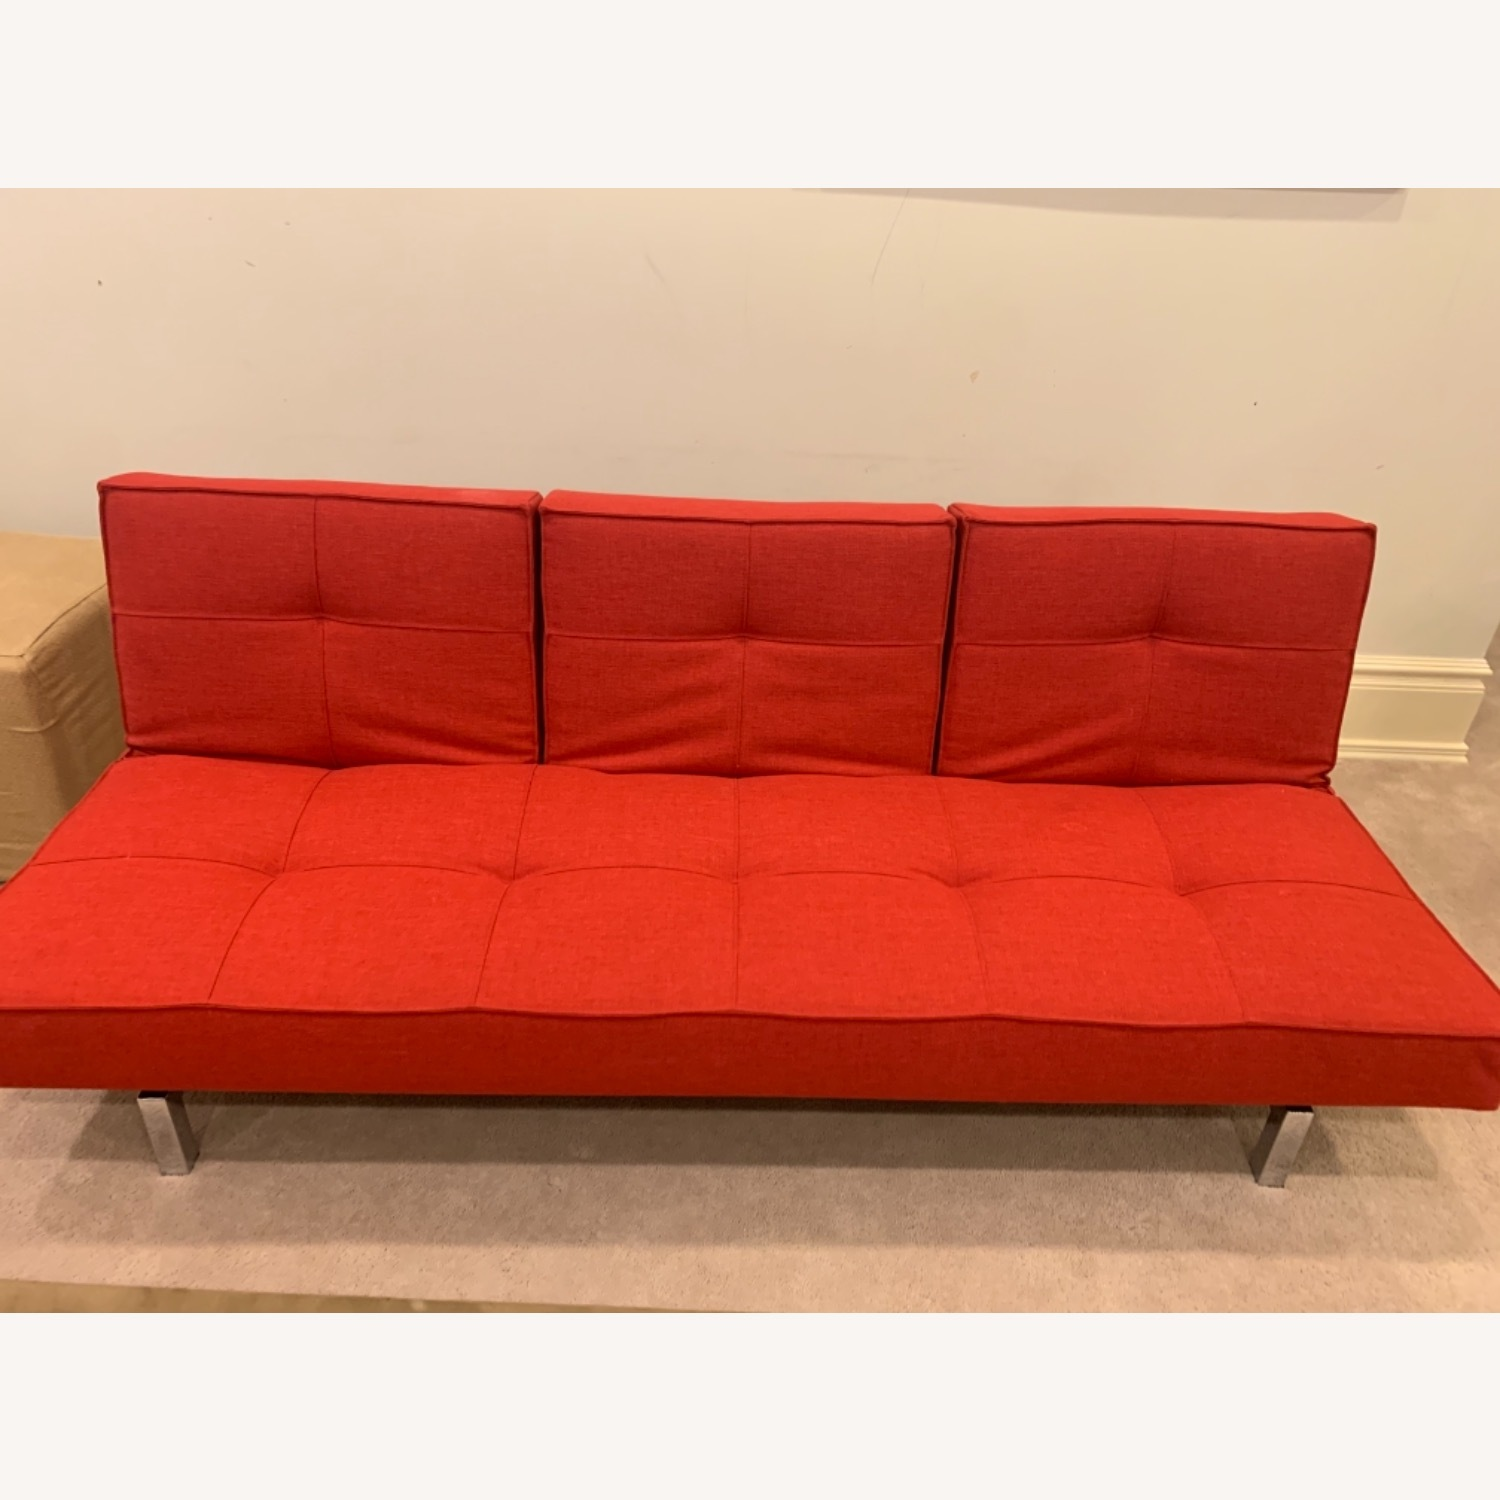 Room and Board Reclining Sleeper Sofa - image-1